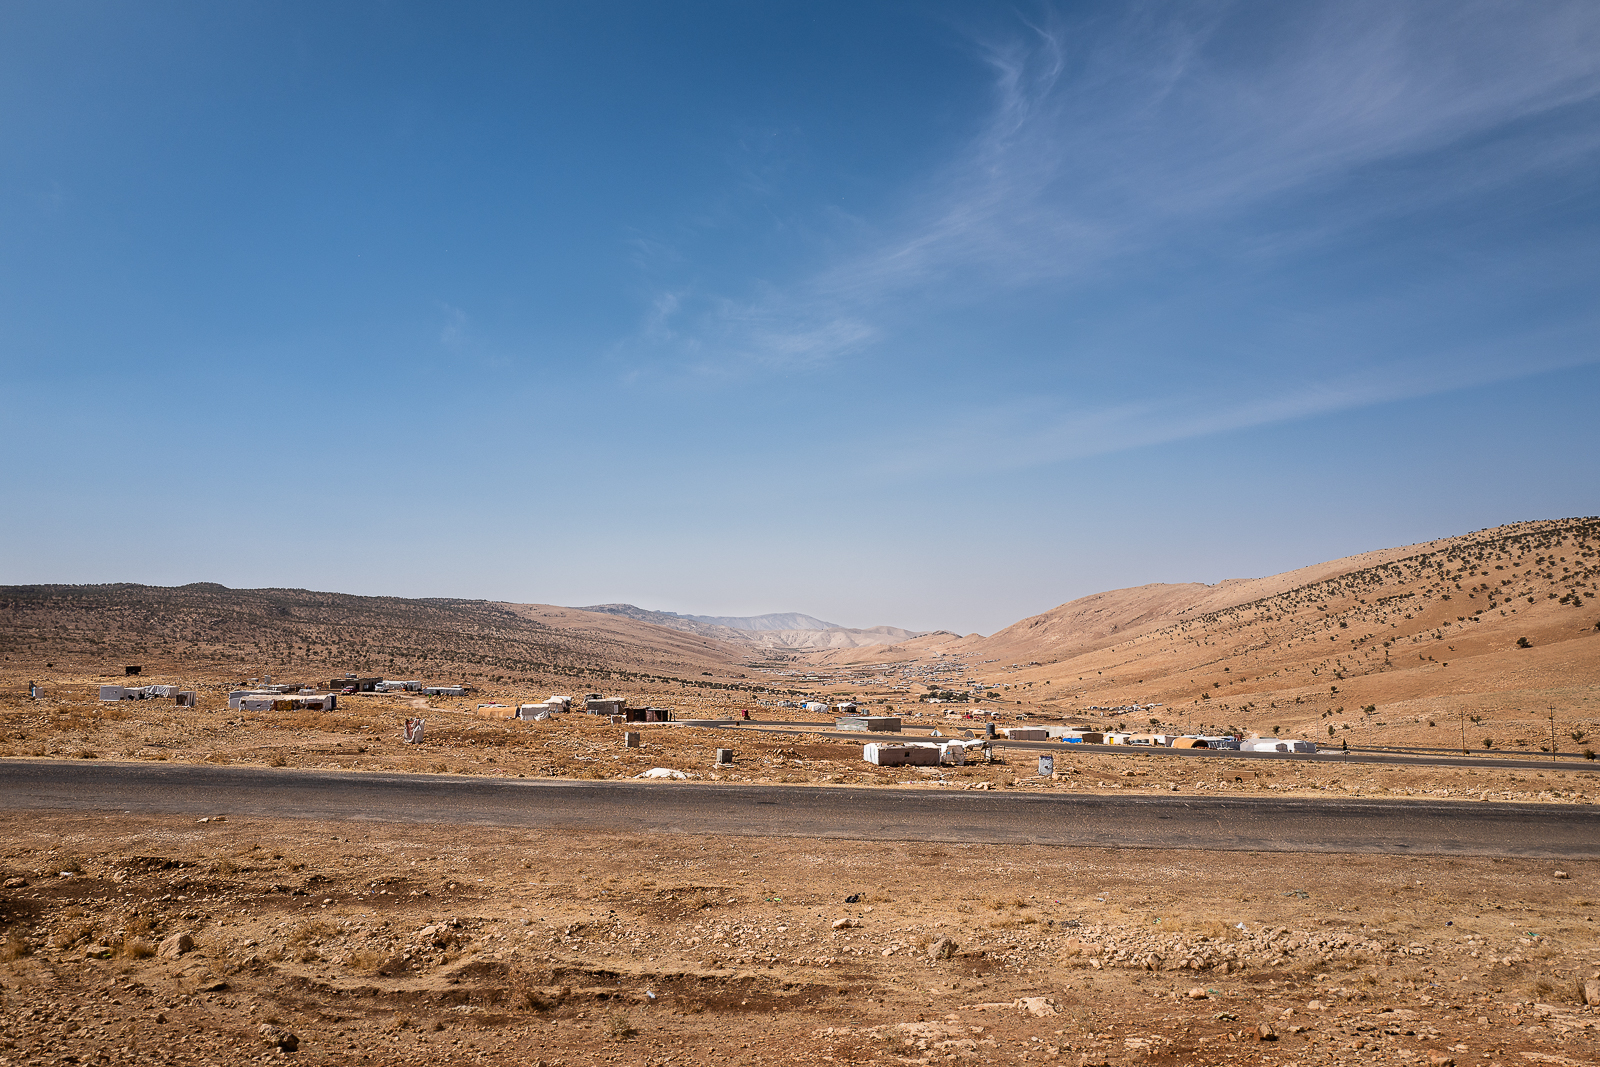 The lunar view of the refugees camp on top of Sinjar mount